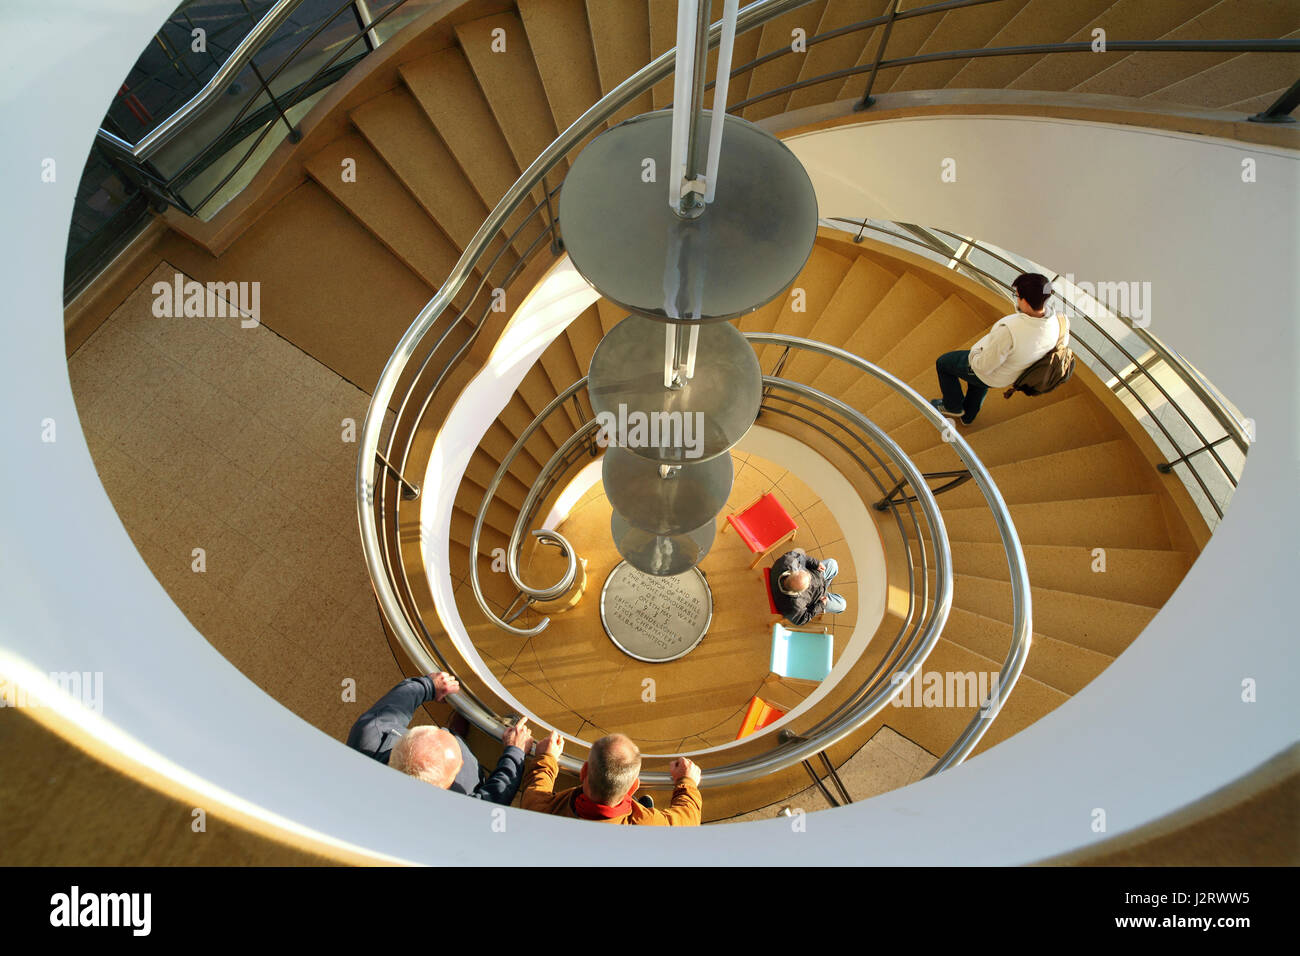 Looking down a spiral staircase at the De La Warr Pavilion, Bexhill, East Sussex Stock Photo